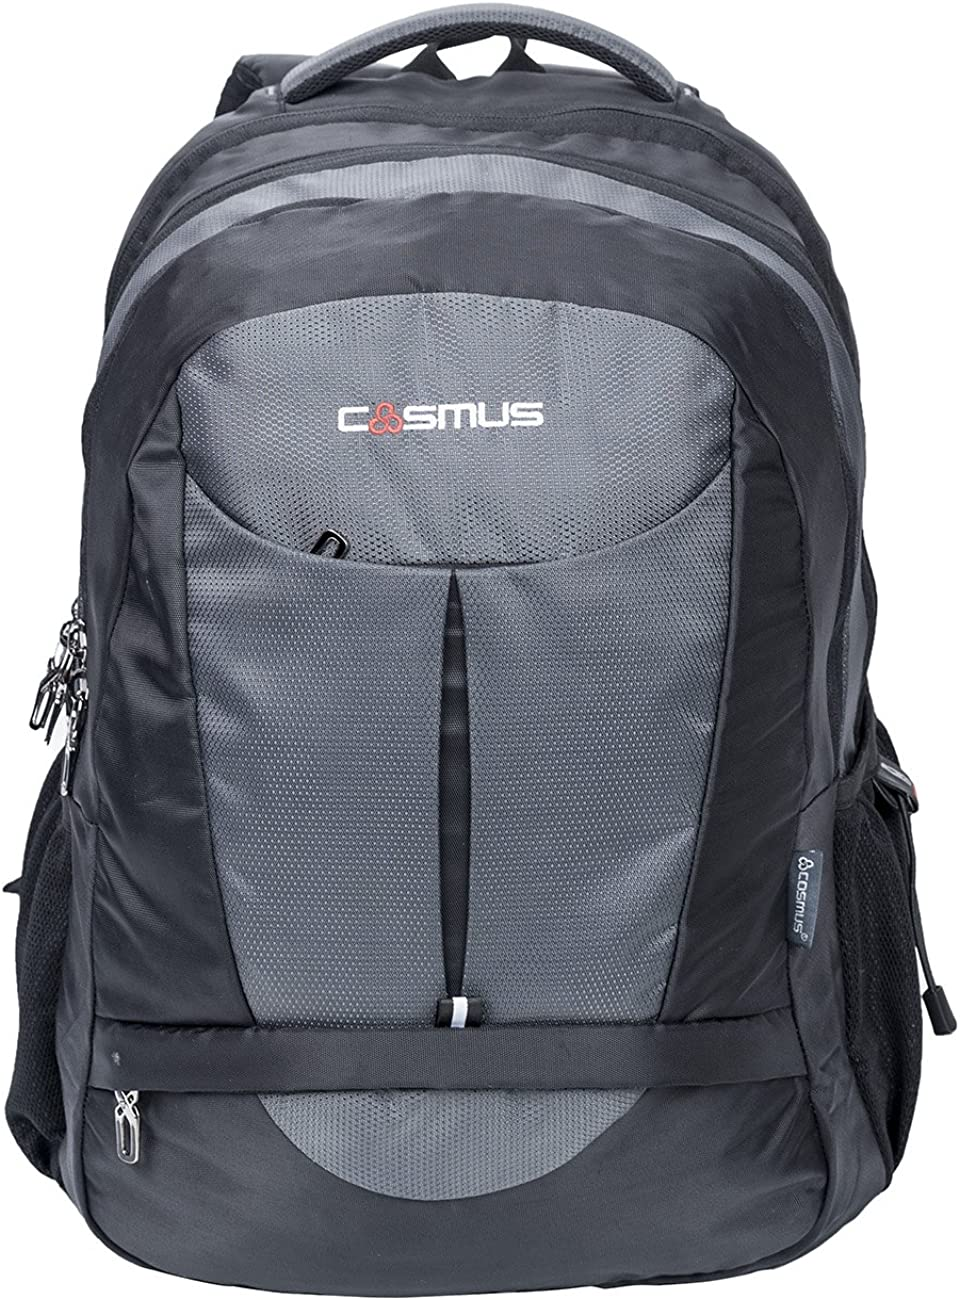 Cosmus Eden DX Black - Grey Polyester Waterproof Large Laptop Backpack